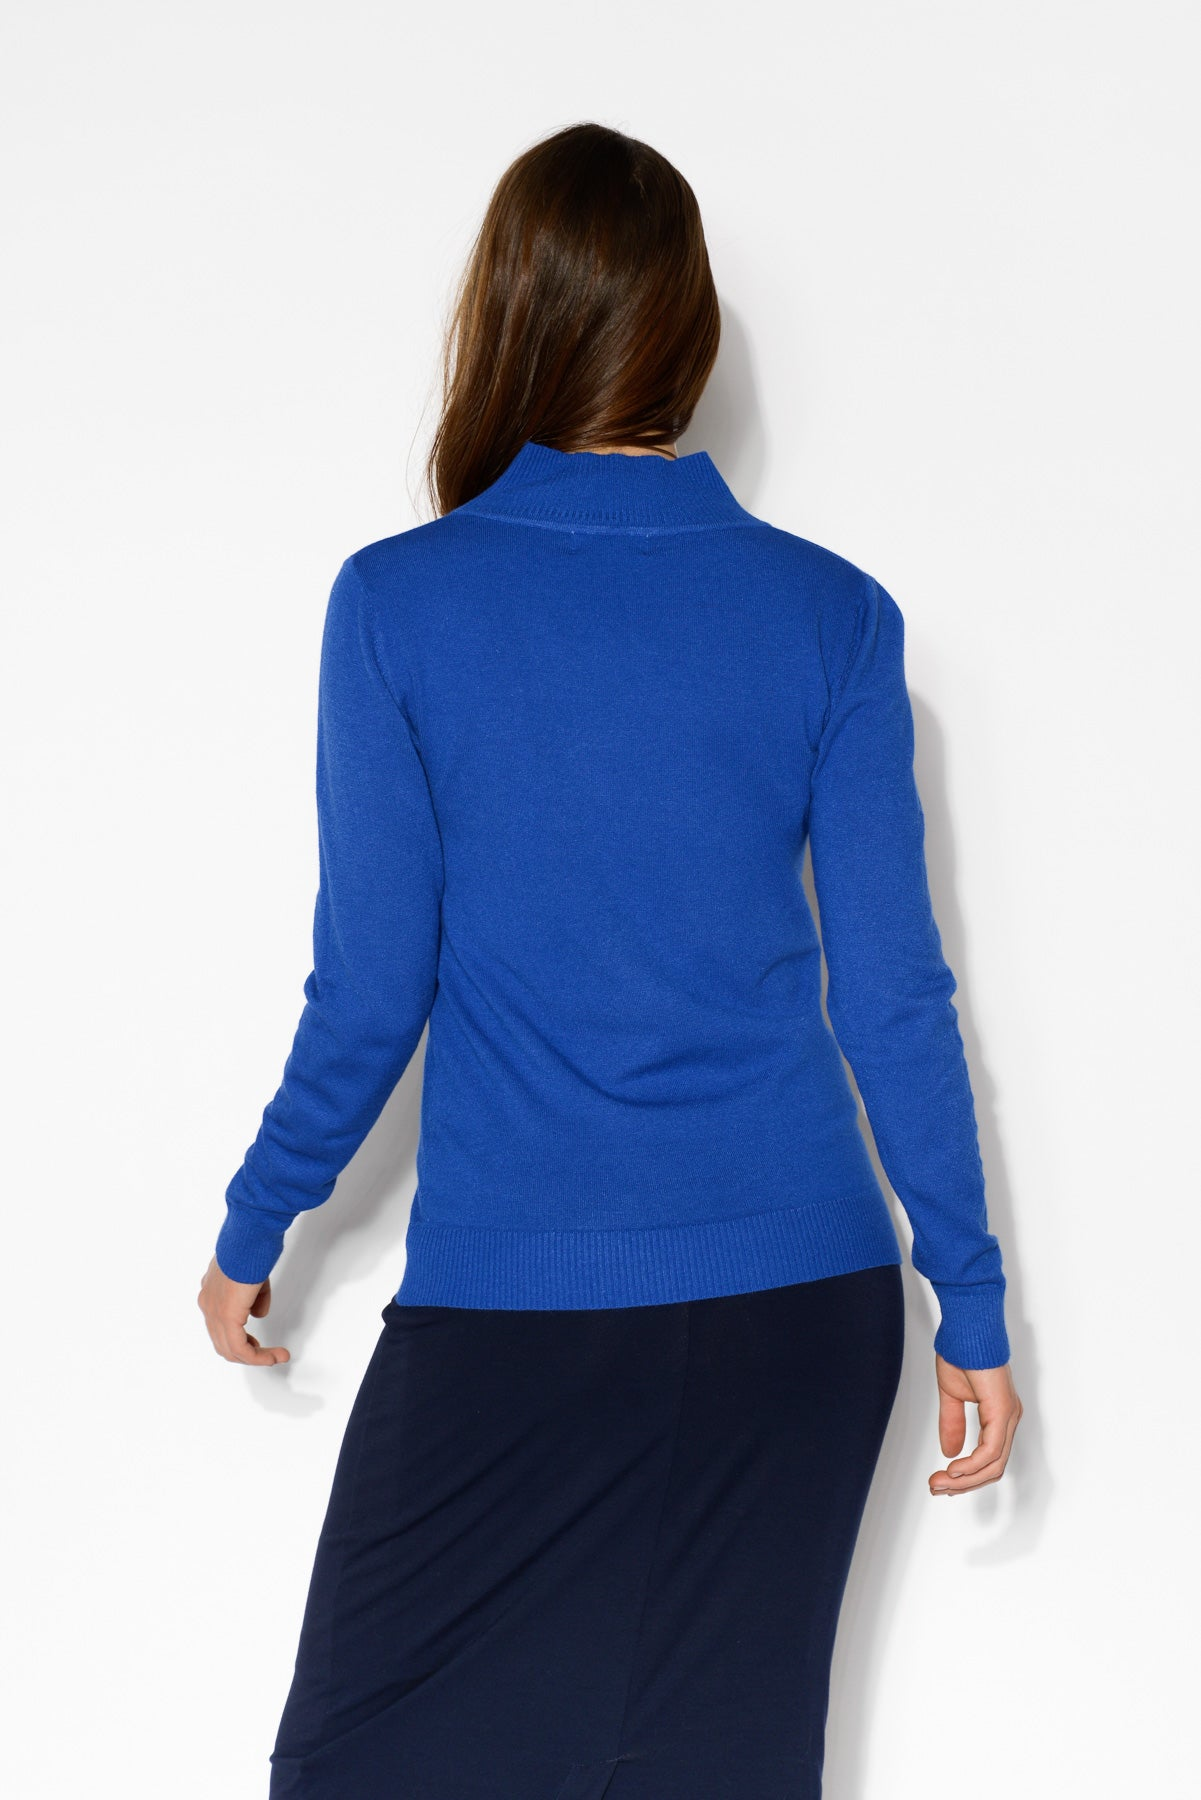 Sharni Cobalt Blue Knit Top - Blue Bungalow